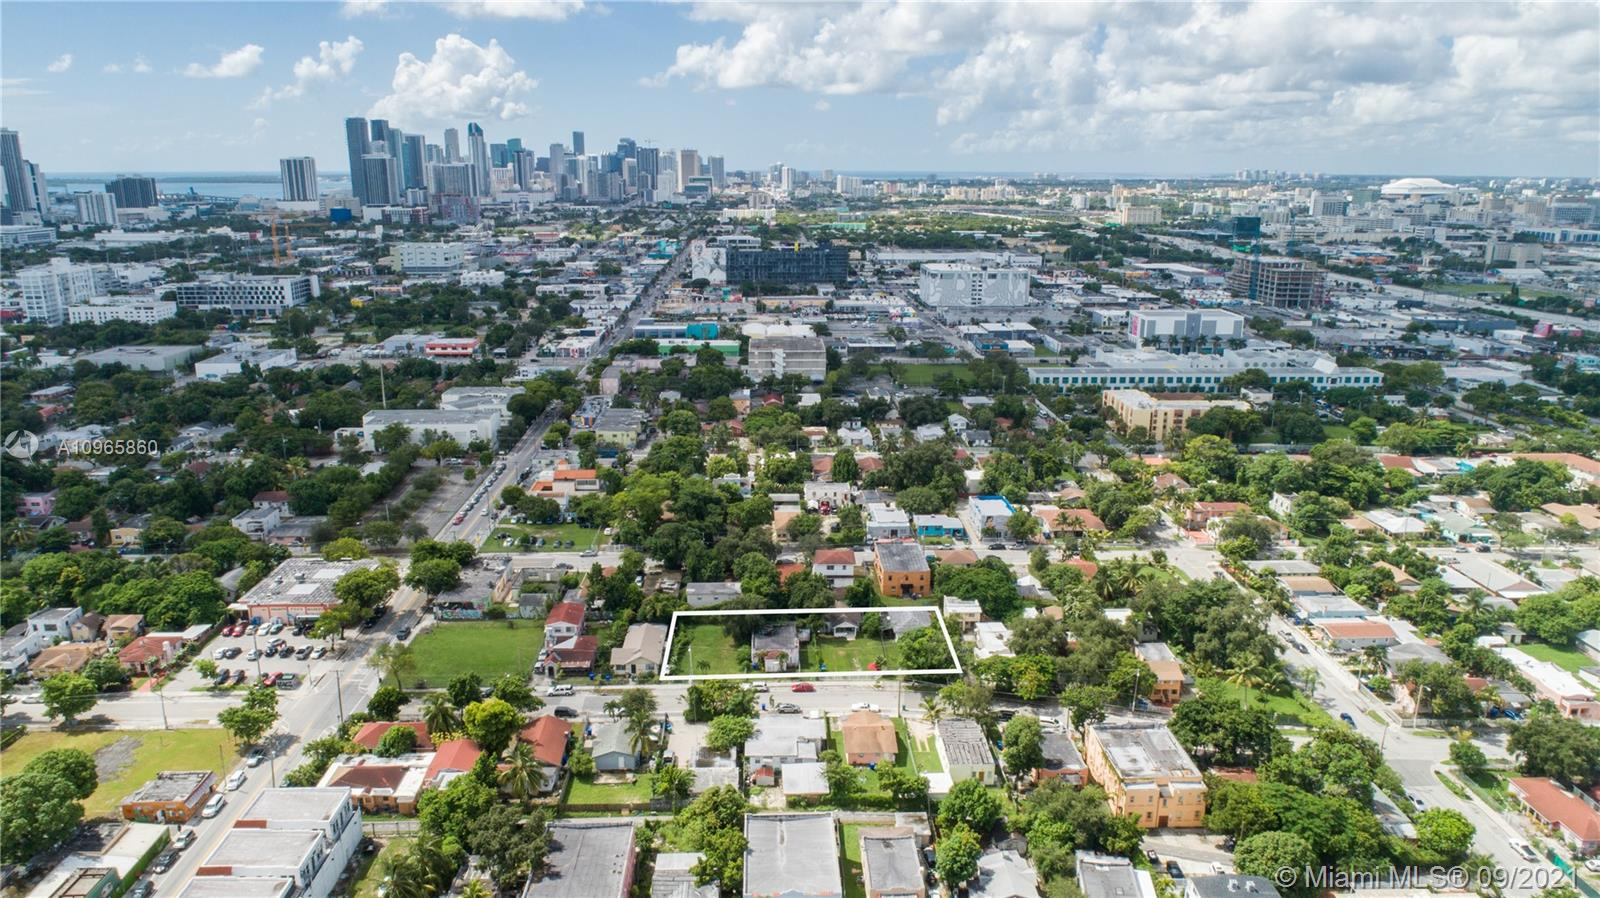 Details for 234 33rd St, Miami, FL 33127